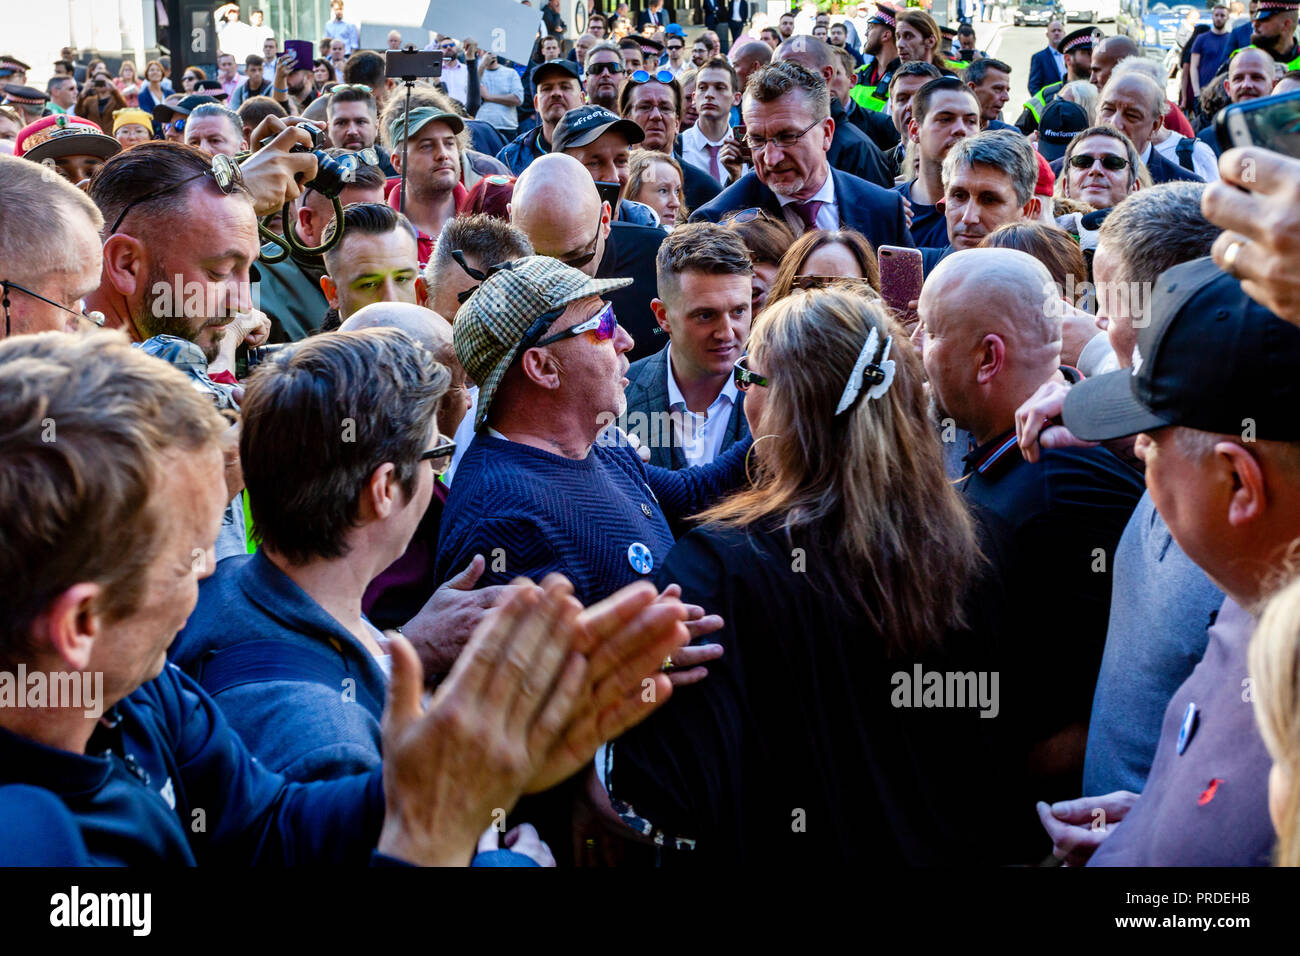 Right Wing Activist Tommy Robinson Is Surrounded By His Supporters At The Old Bailey After His Charge For Contempt of Court Is Adjourned, London, UK - Stock Image